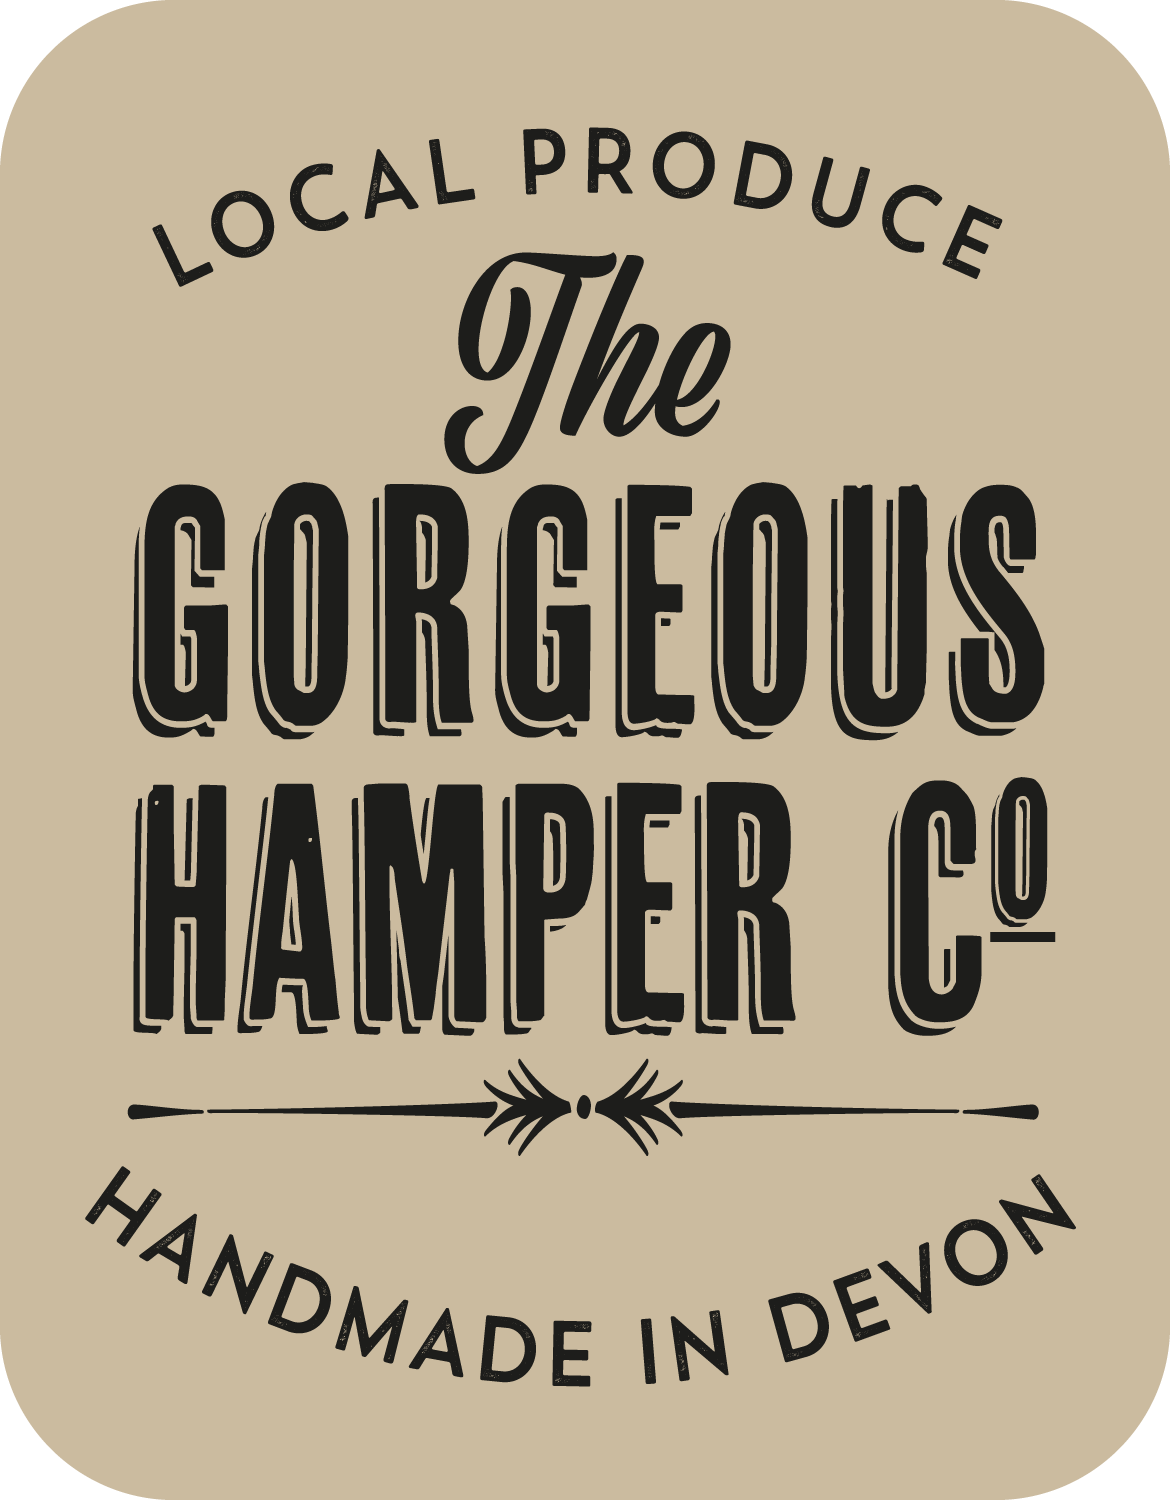 Gorgeous Hampers